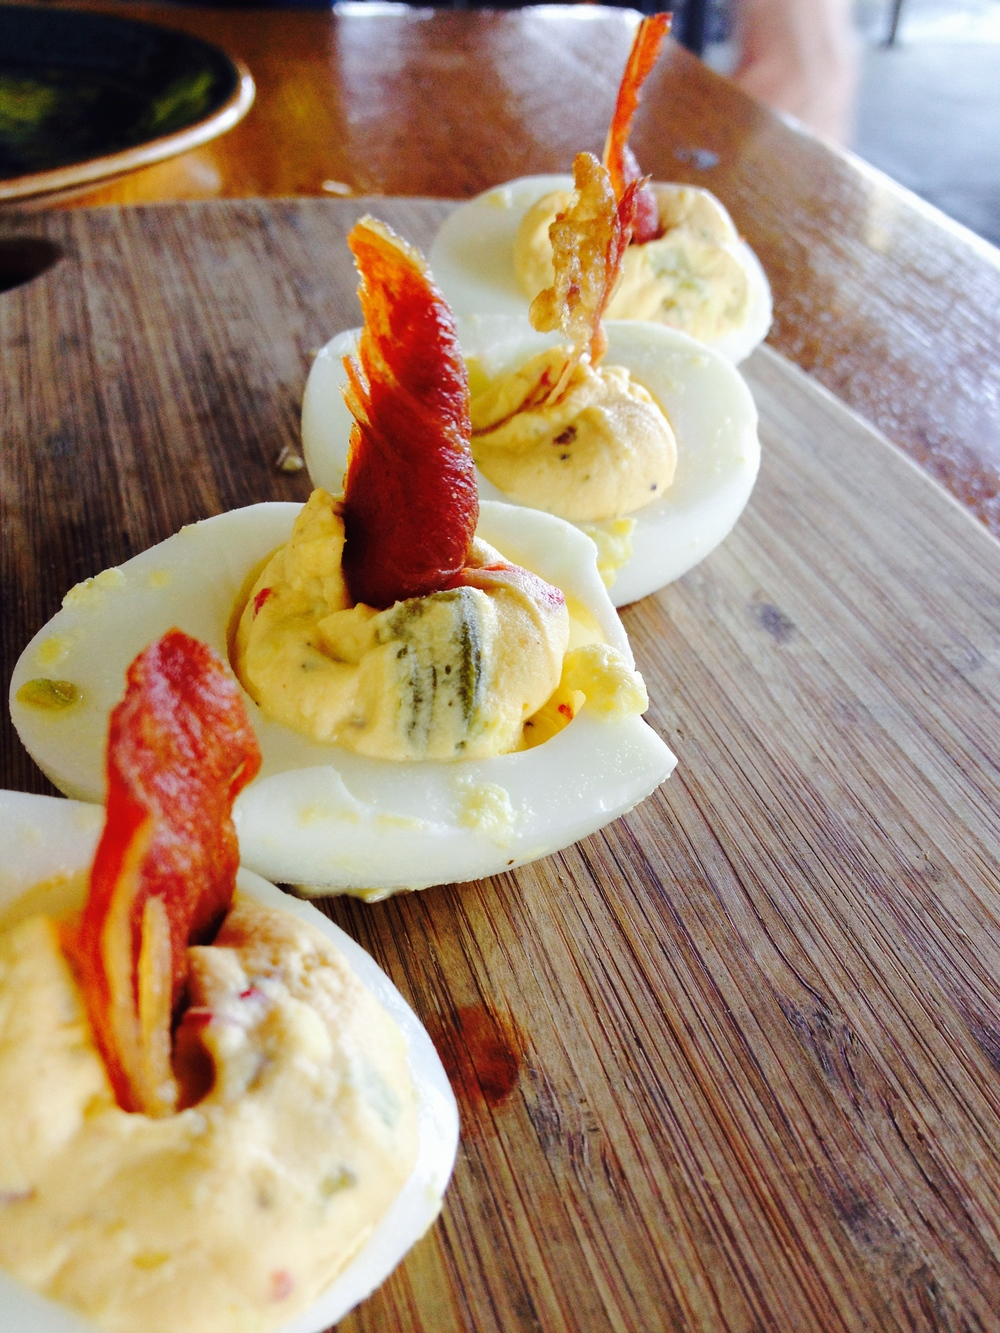 Speck & Eggs with deviled eggs and crispy proscuitto.